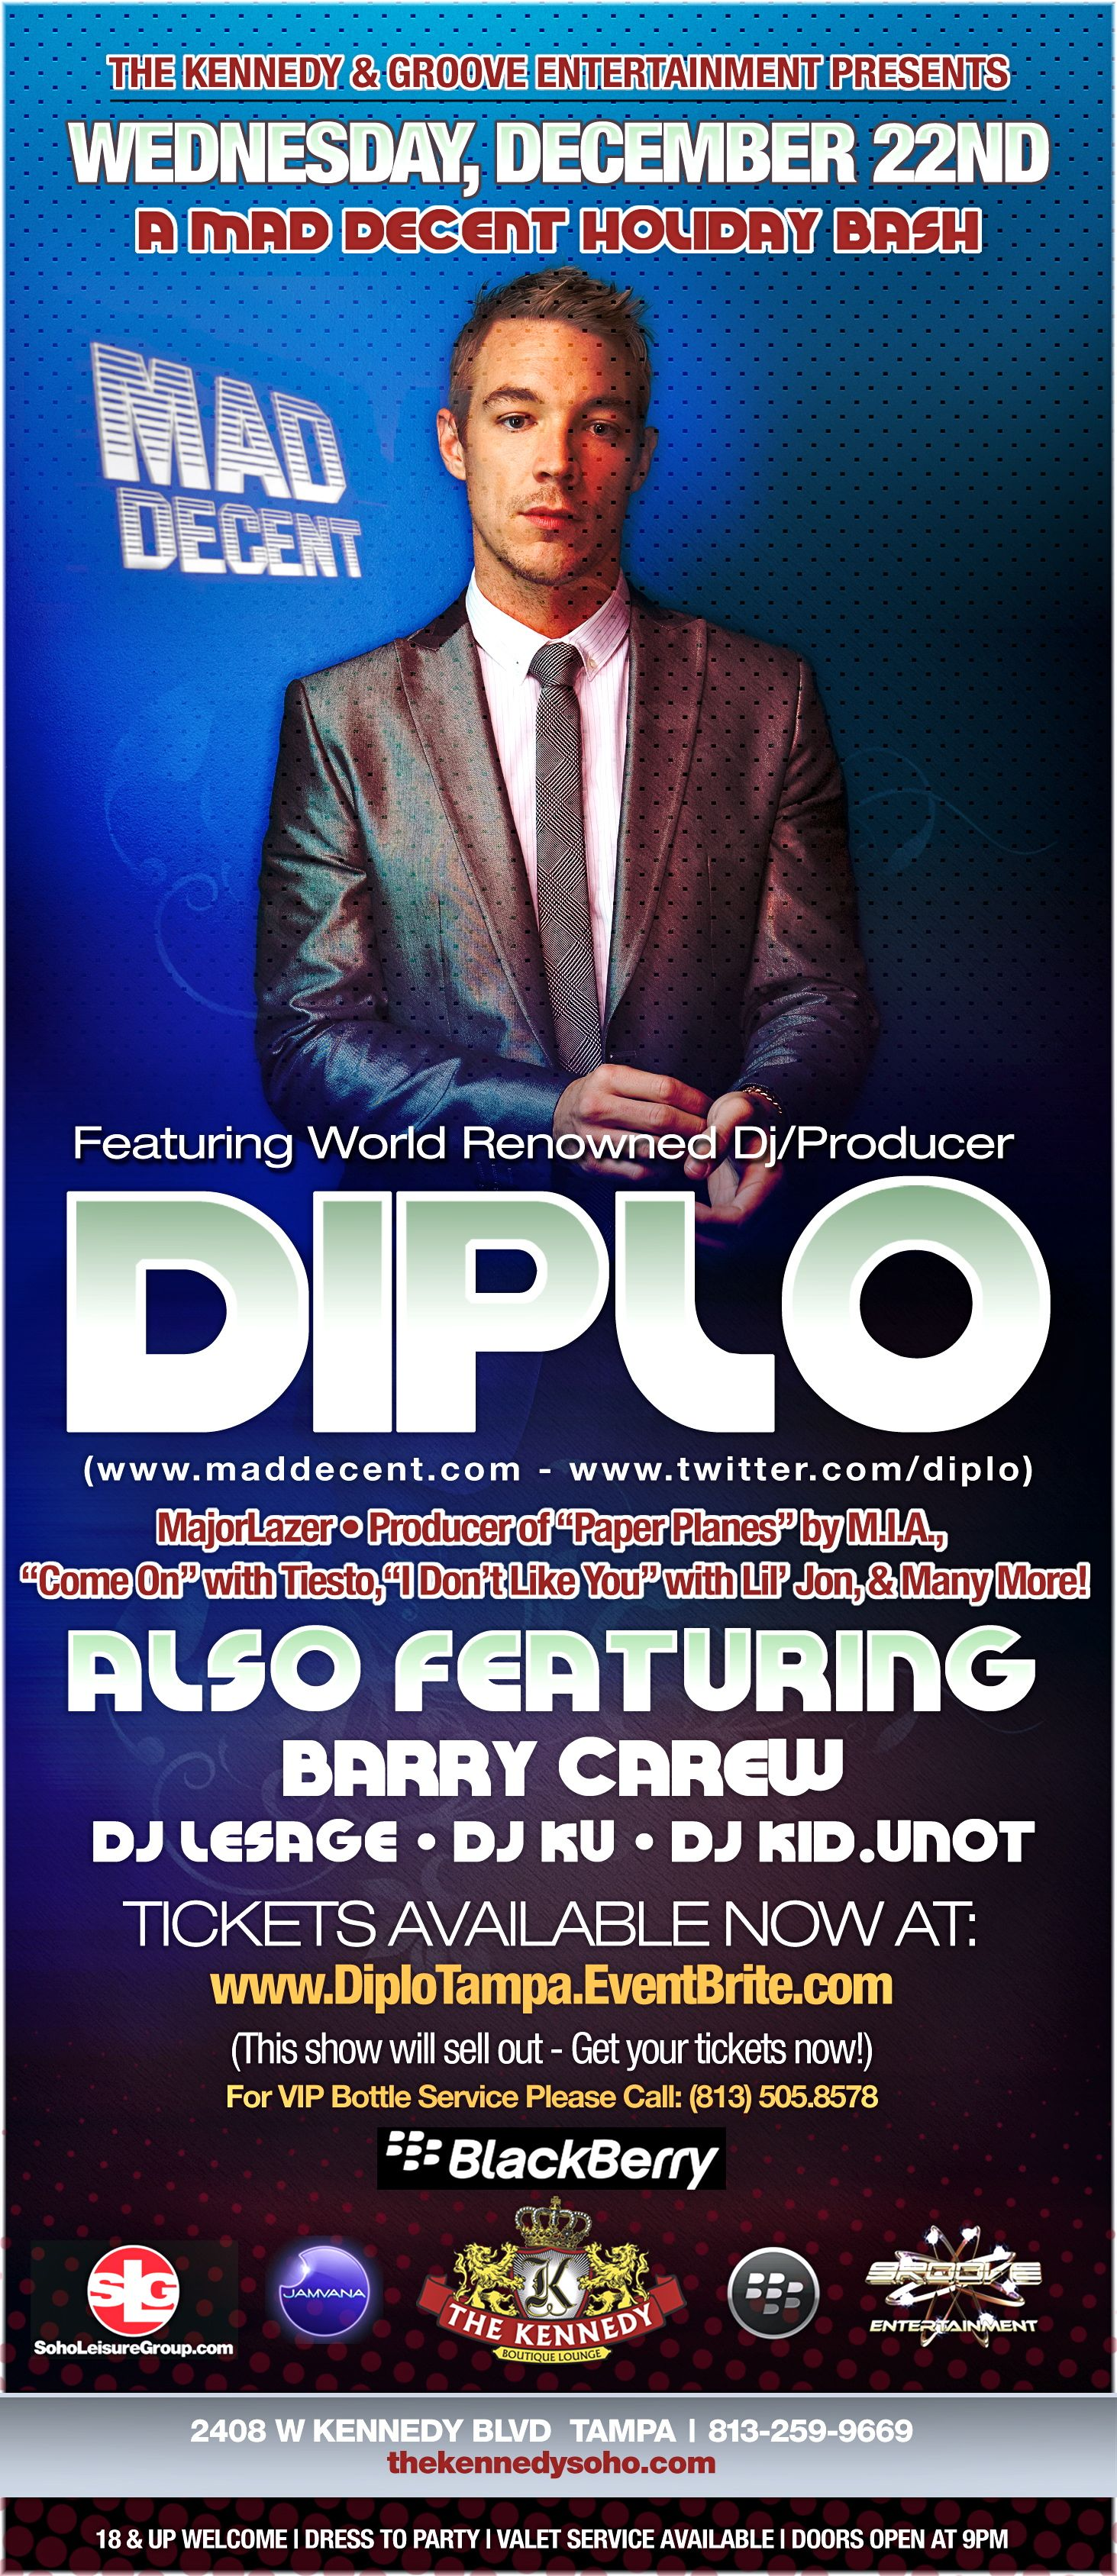 Diplo at The Kennedy Wed Dec 22nd along side DJ BARRY CAREW